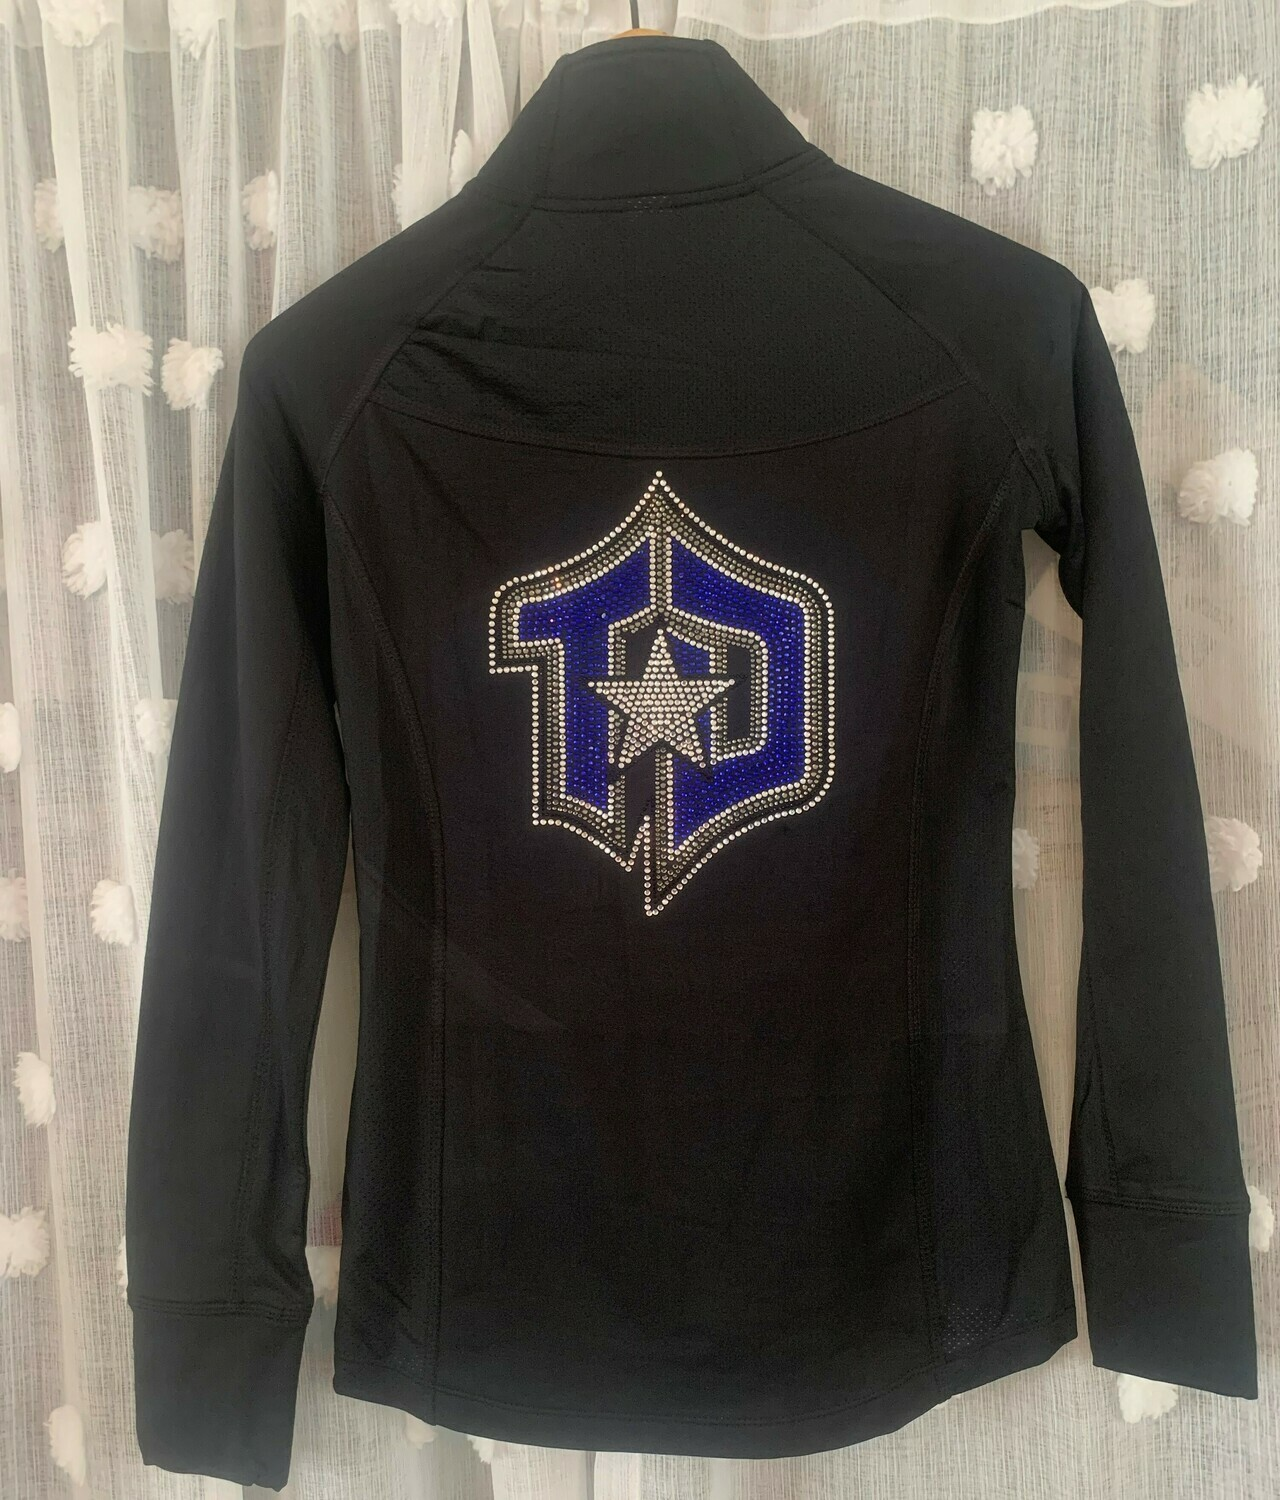 Ladies Studio Jacket with full back Rhinestone TD Logo